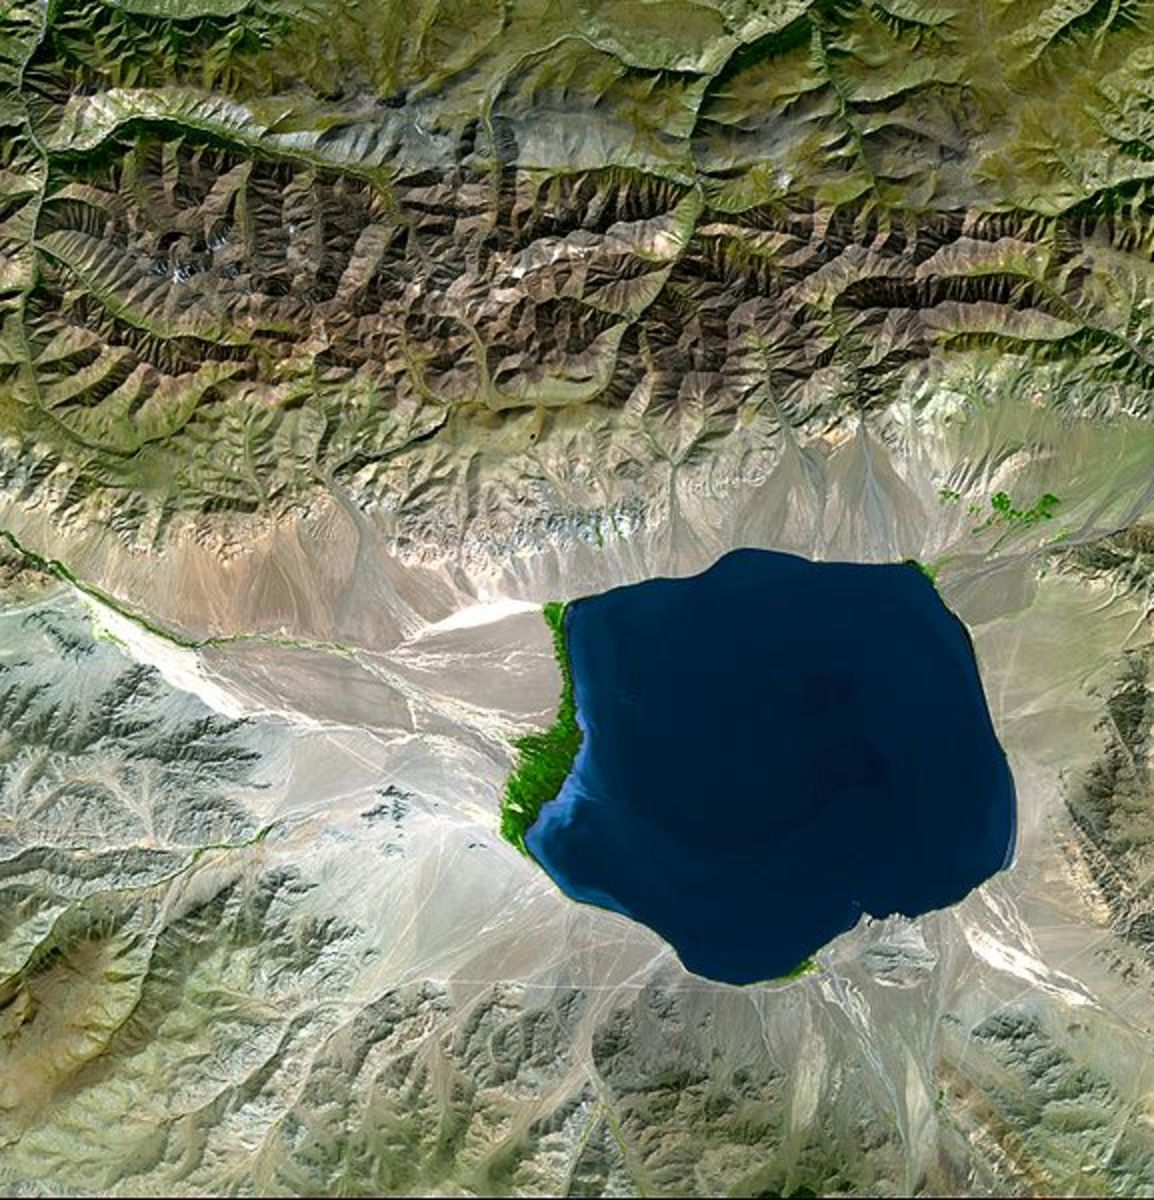 Uureg Nuur - an endorheic basin in Mongolia.